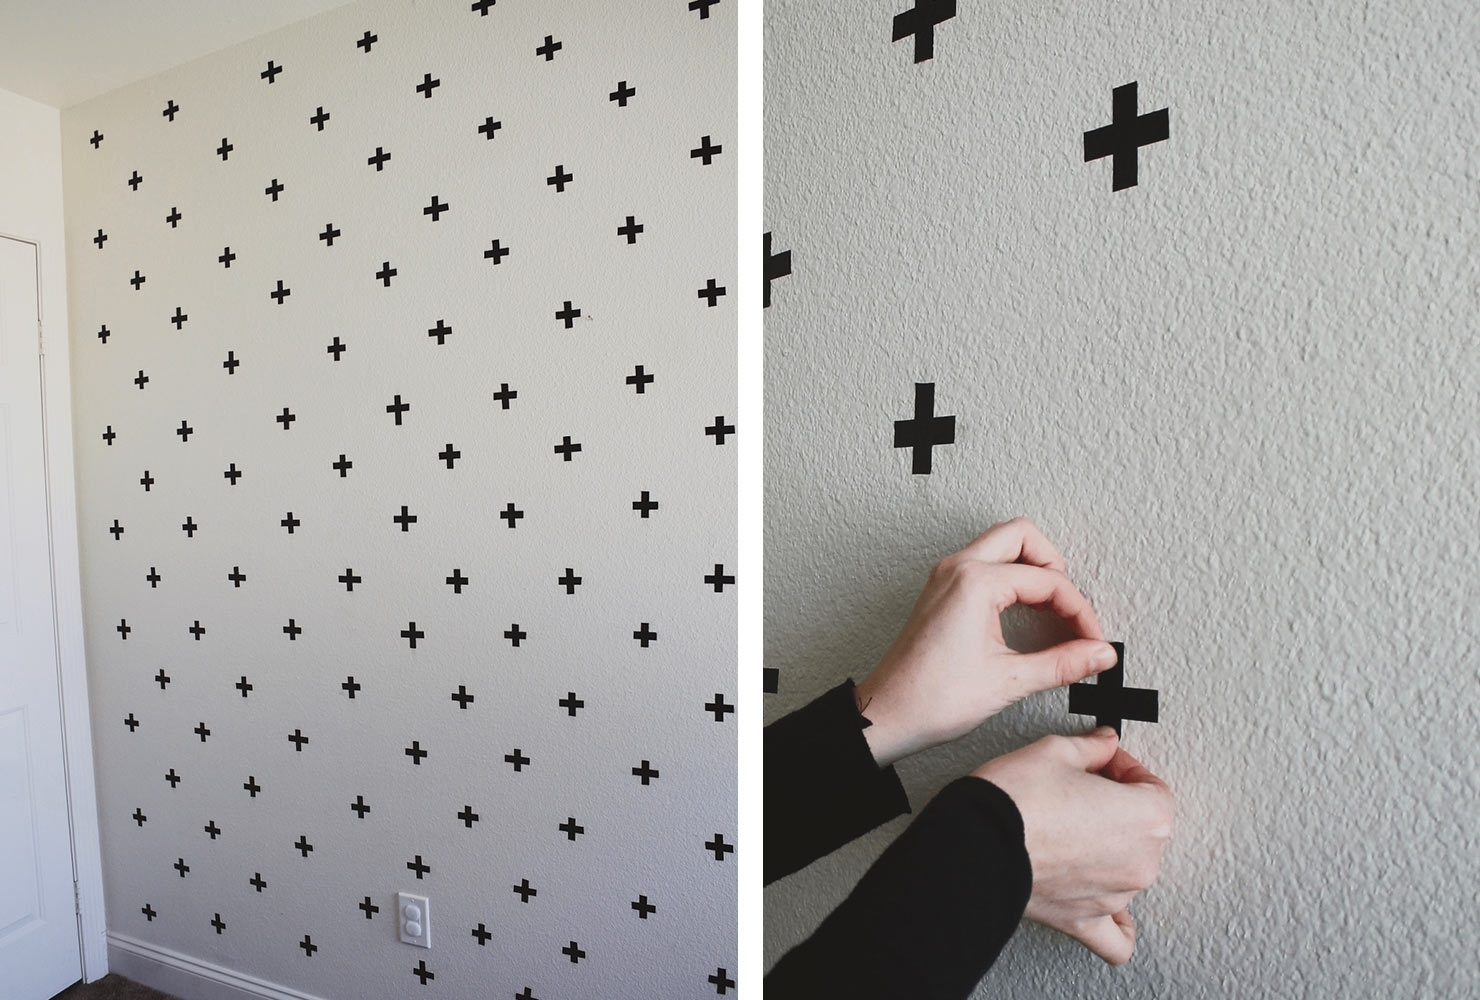 25 Unique Diy Wall Art Ideas (With Printables) | Shutterfly In Washi Tape Wall Art (Photo 18 of 20)